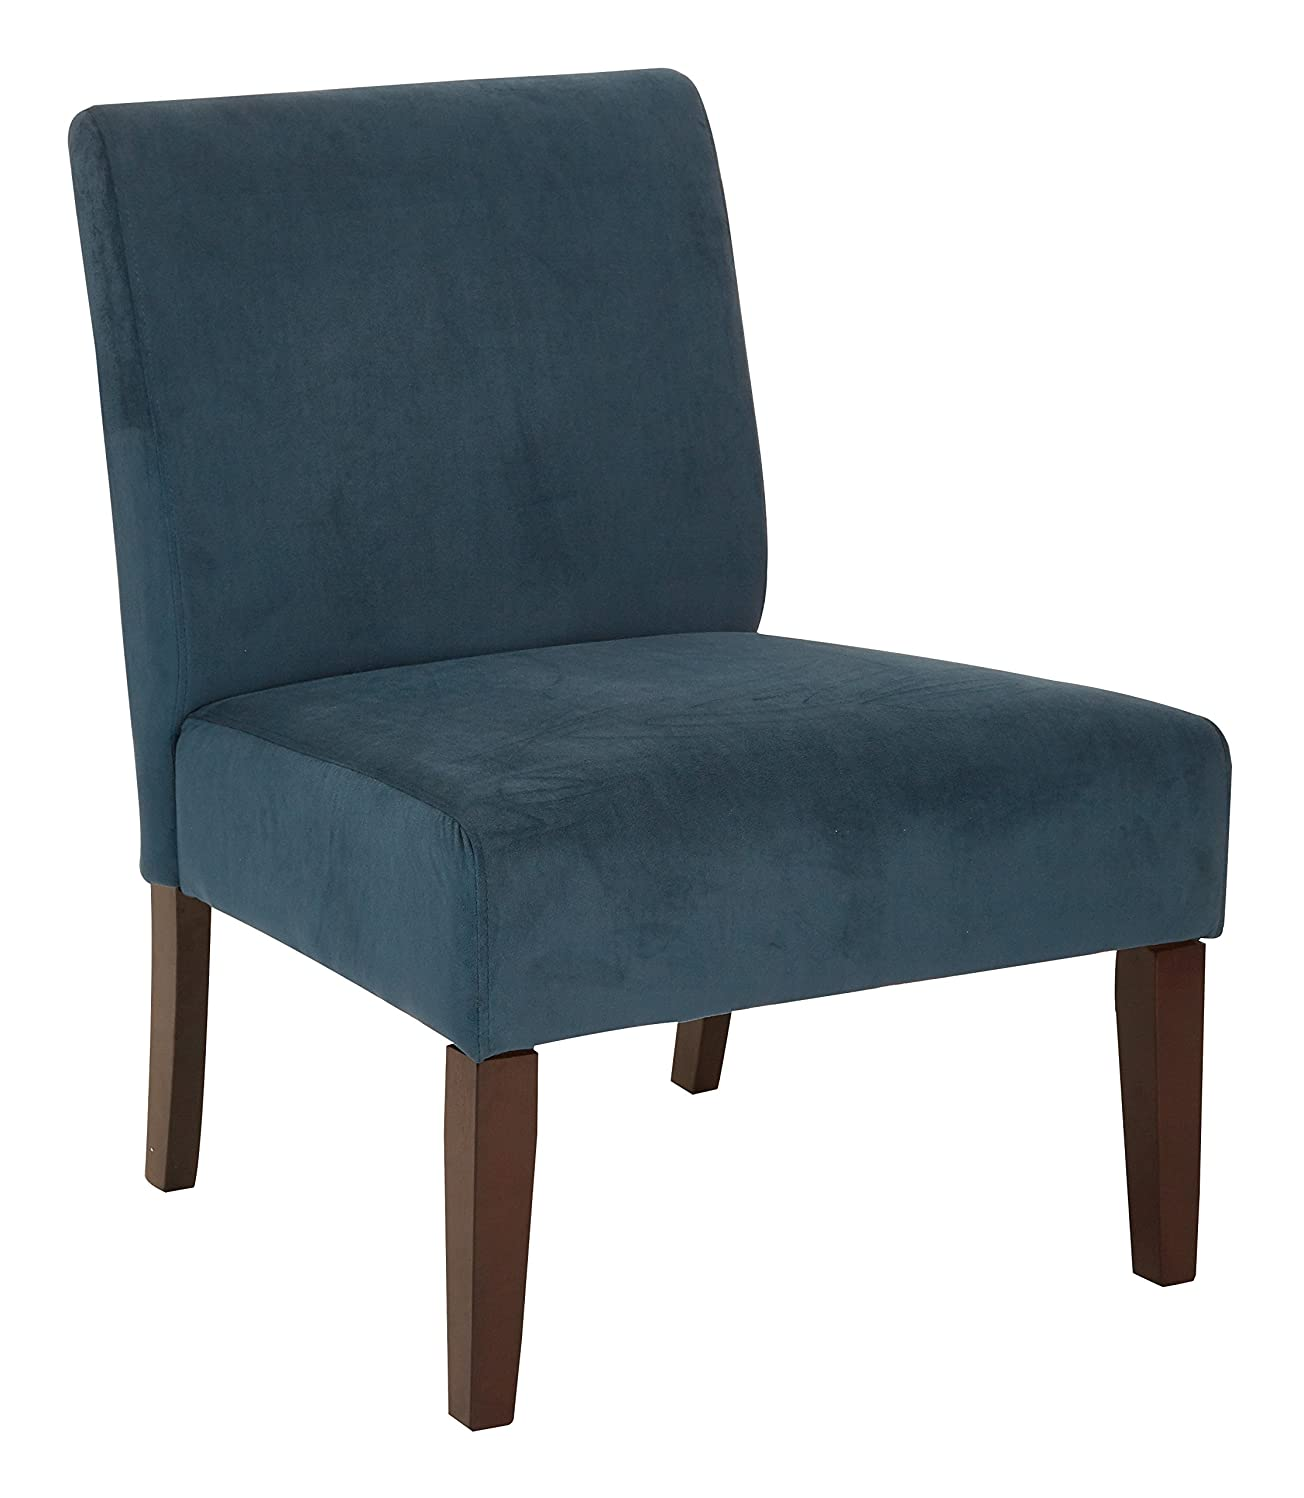 AVE SIX Laguna Accent Chair with Espresso Finish Solid Wood Legs, Azure Velvet Fabric